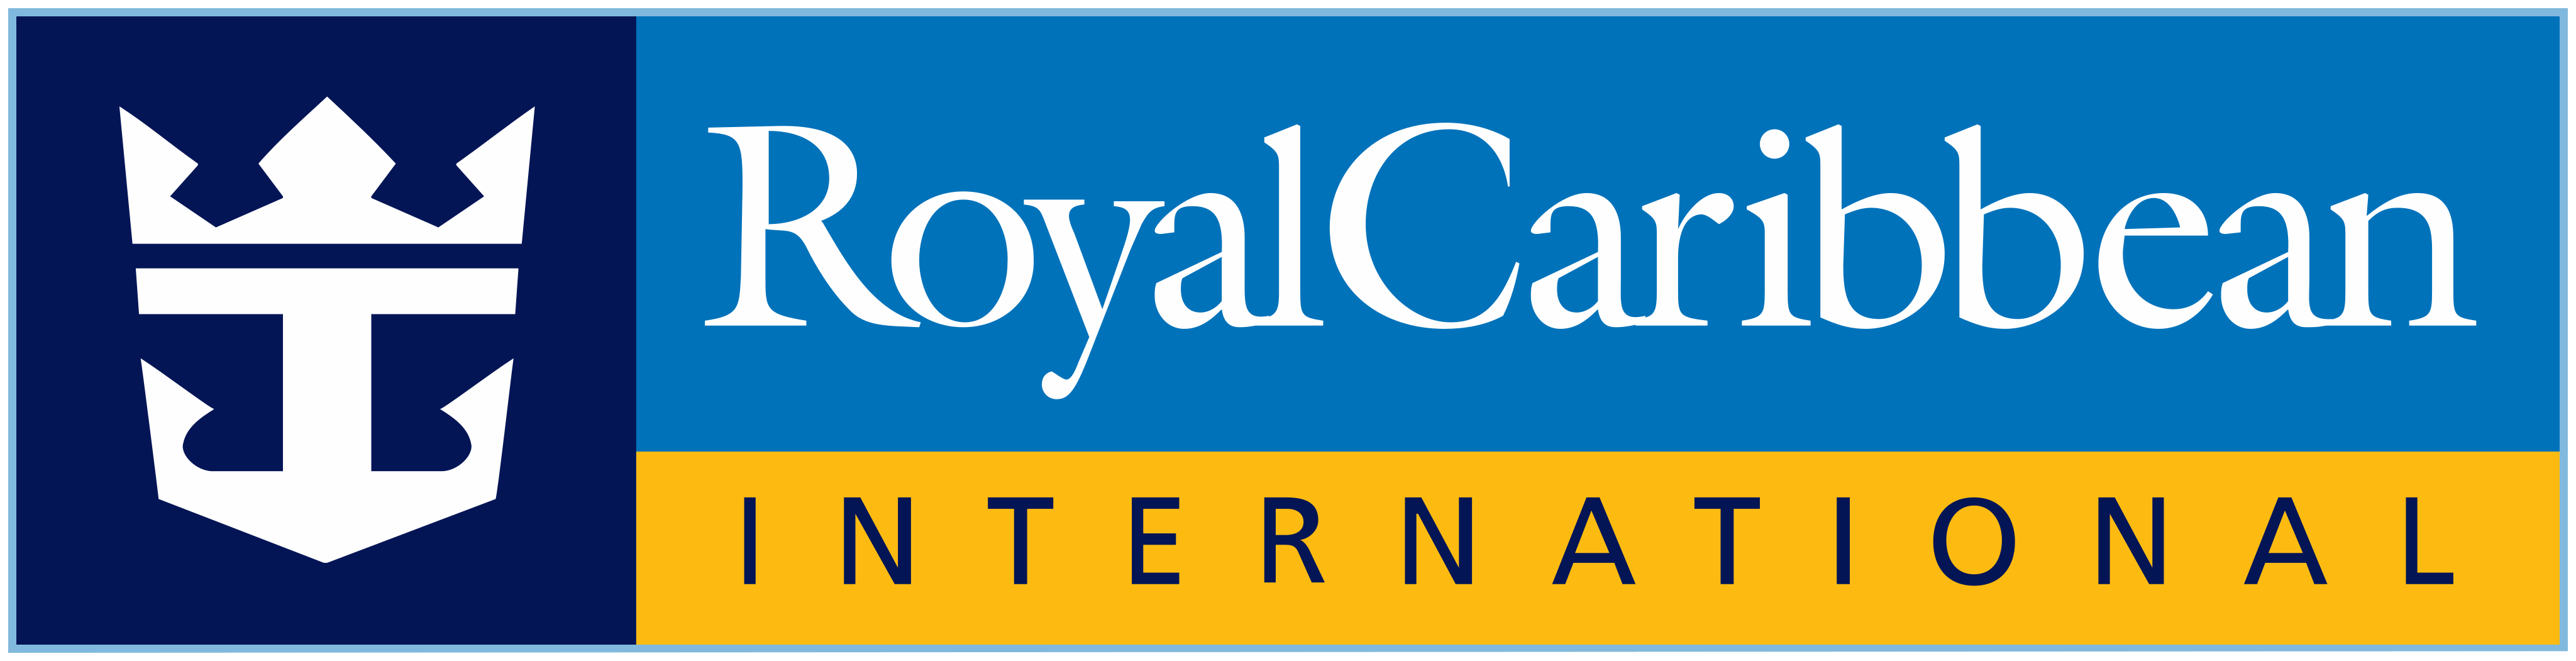 Royal Caribbean Logo.